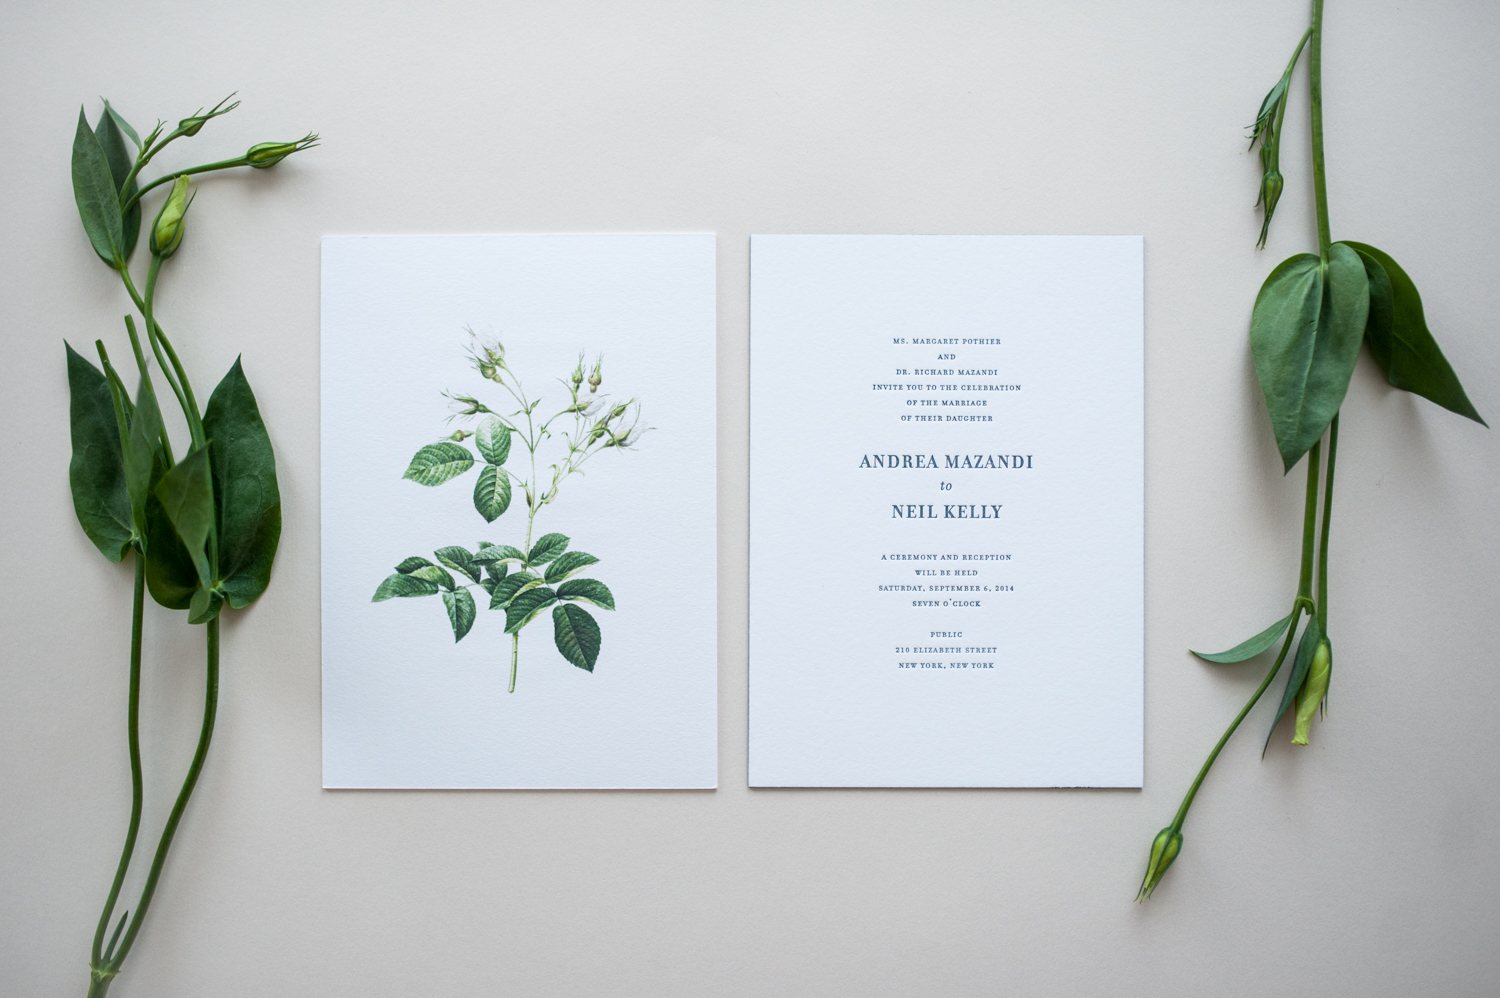 Andrea & Neil Wedding Invitation by Paper & Type, styling and photography by Emilie Anne Szabo